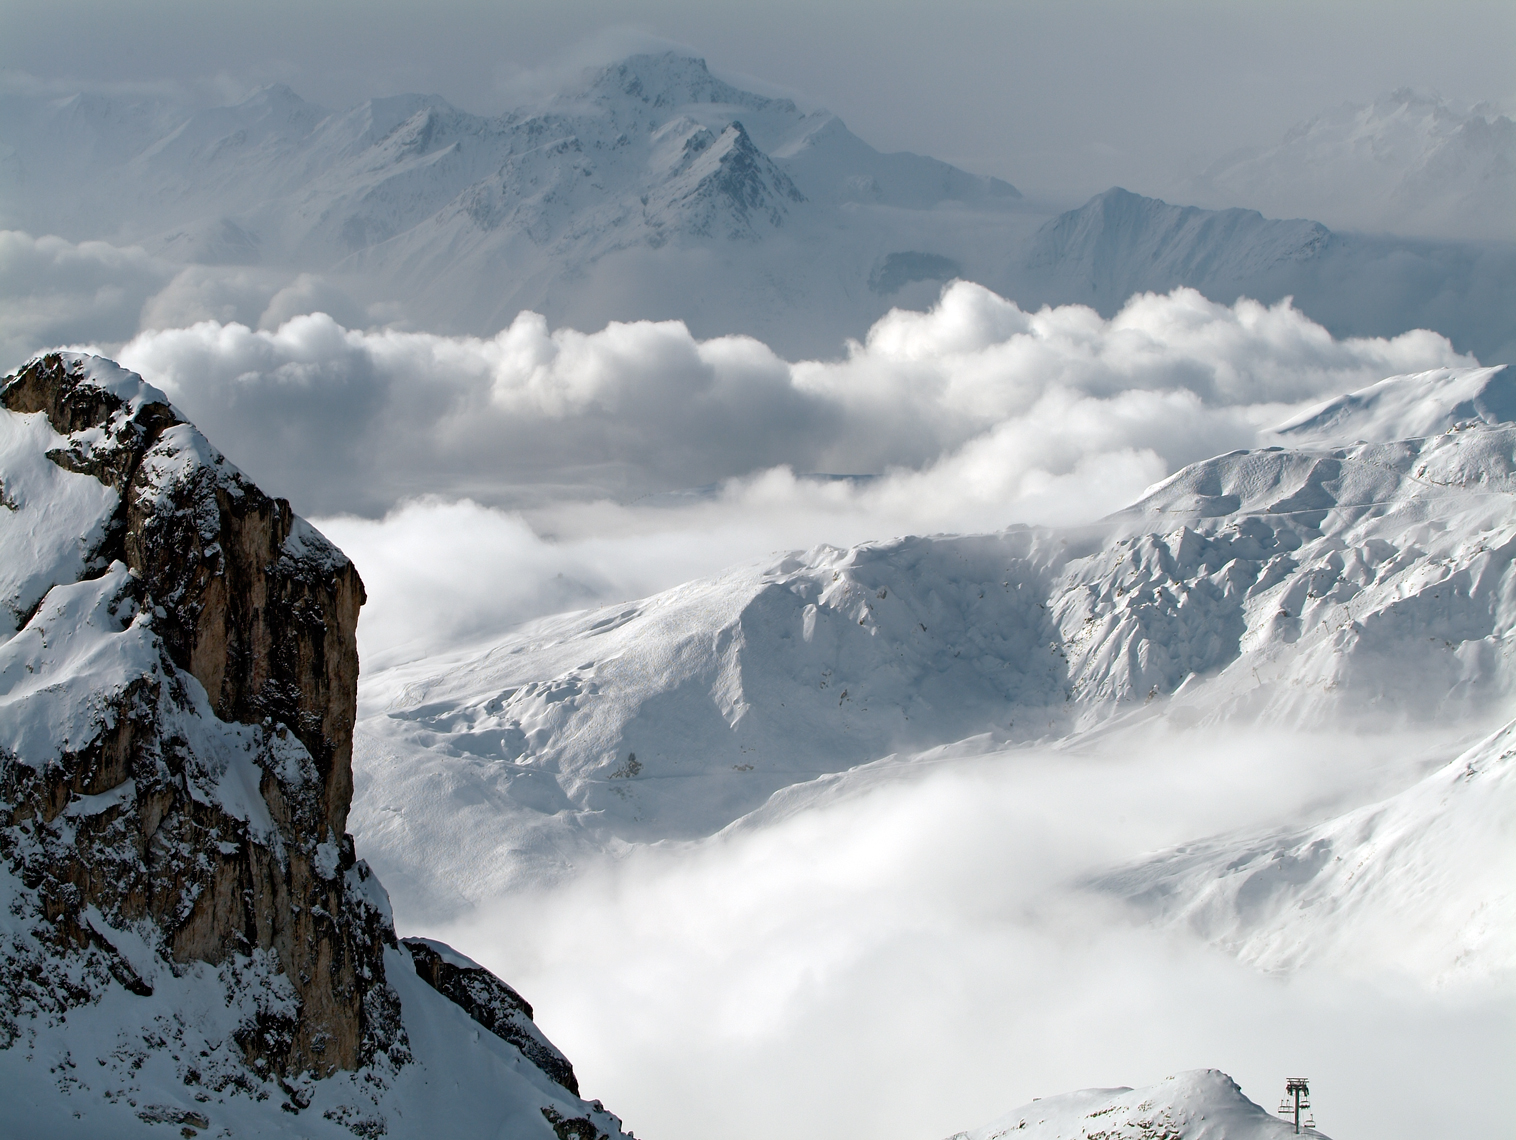 Jon Wyatt Photography - Snow-covered mountains in La Plagne backcountry, France